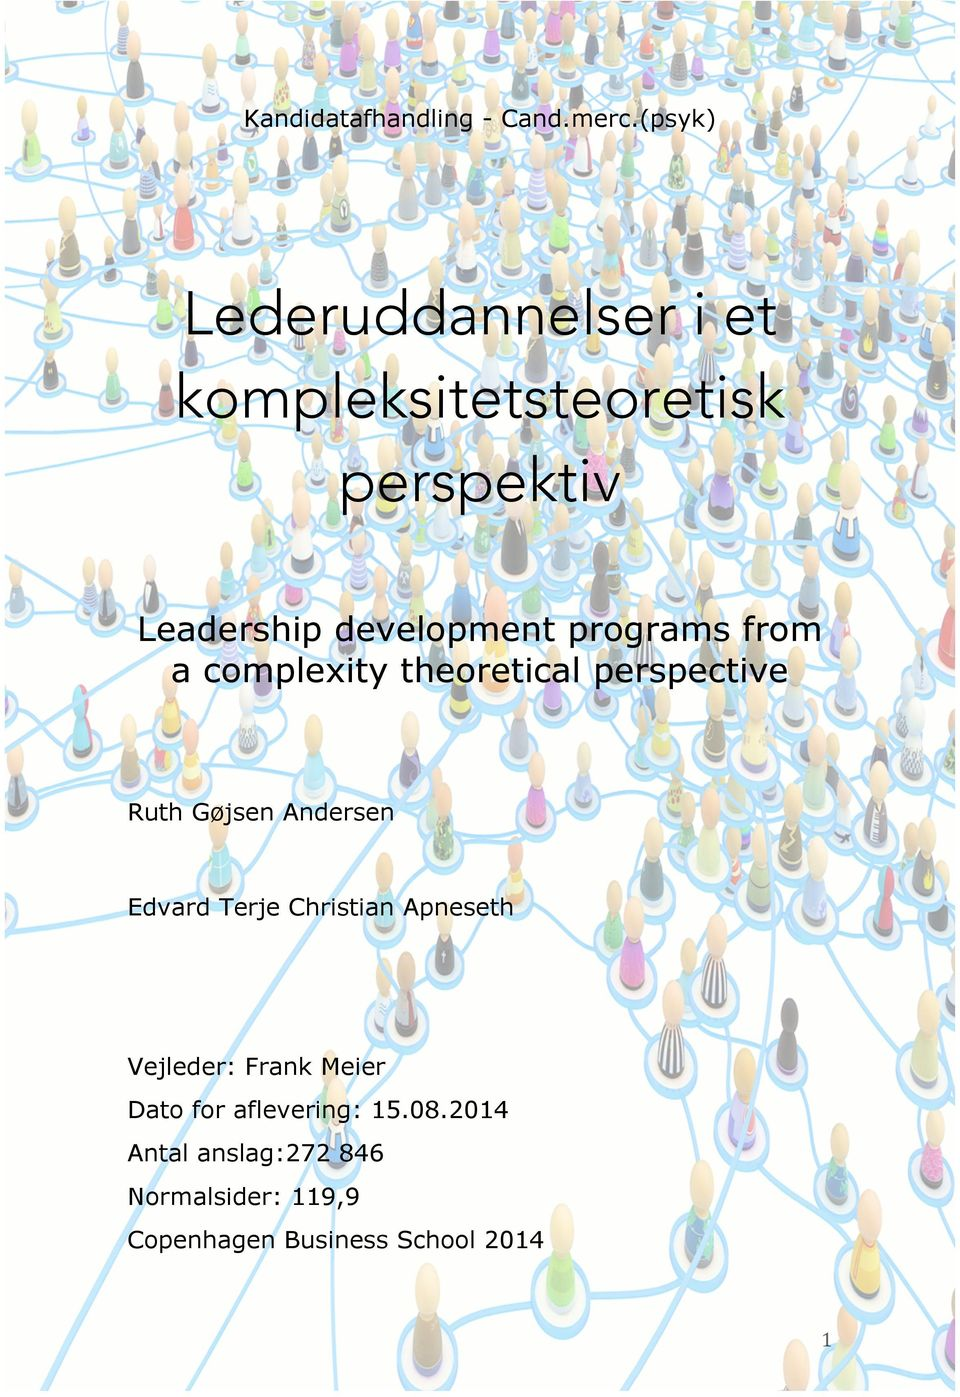 programs from a complexity theoretical perspective Ruth Gøjsen Andersen Edvard Terje